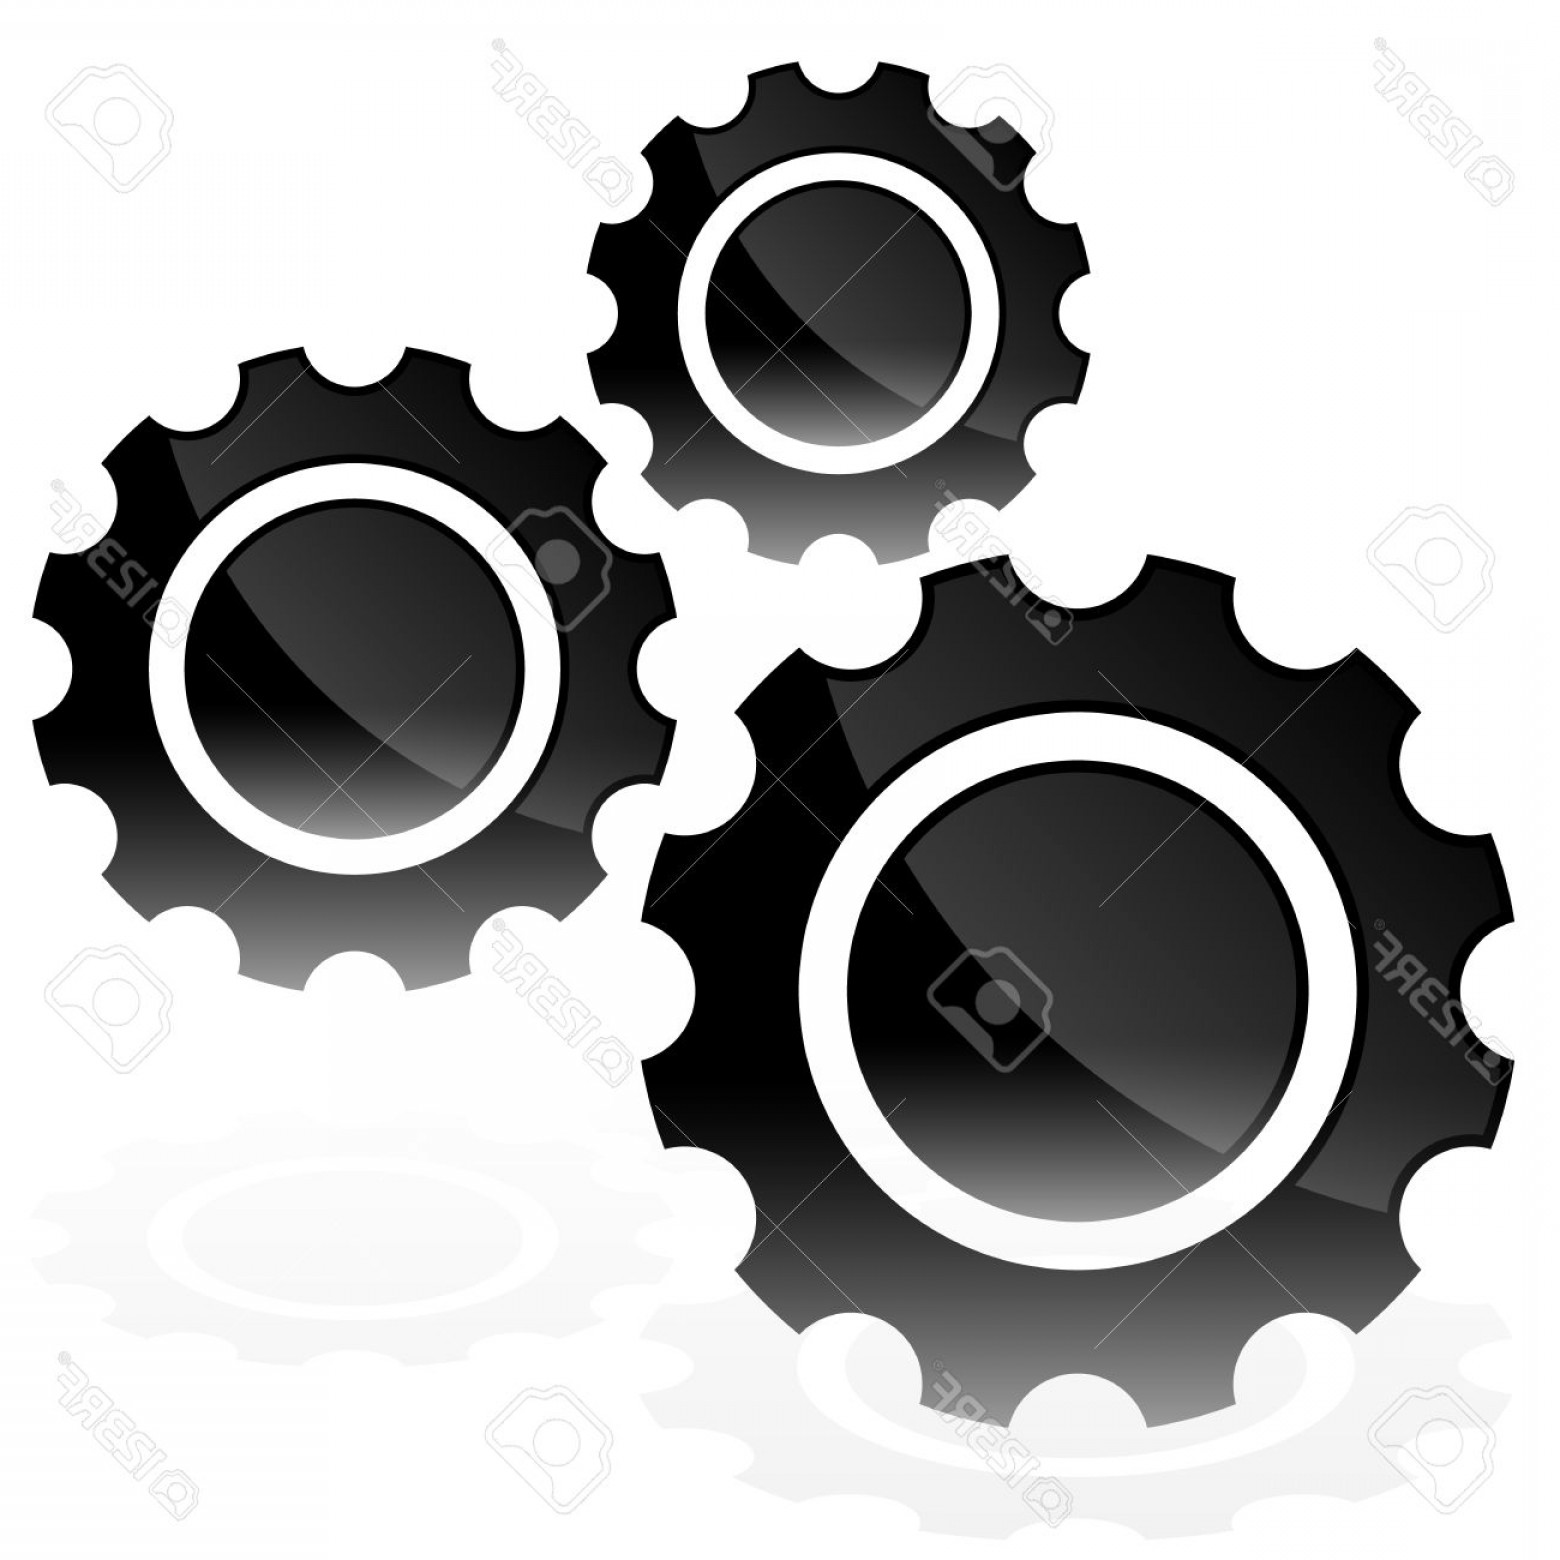 Vector Gear Graphics: Photostock Vector Various Gear Wheel Rack Wheel Vector Graphics Mechanics Manufacturing Industrial Or Maintenance Rewo